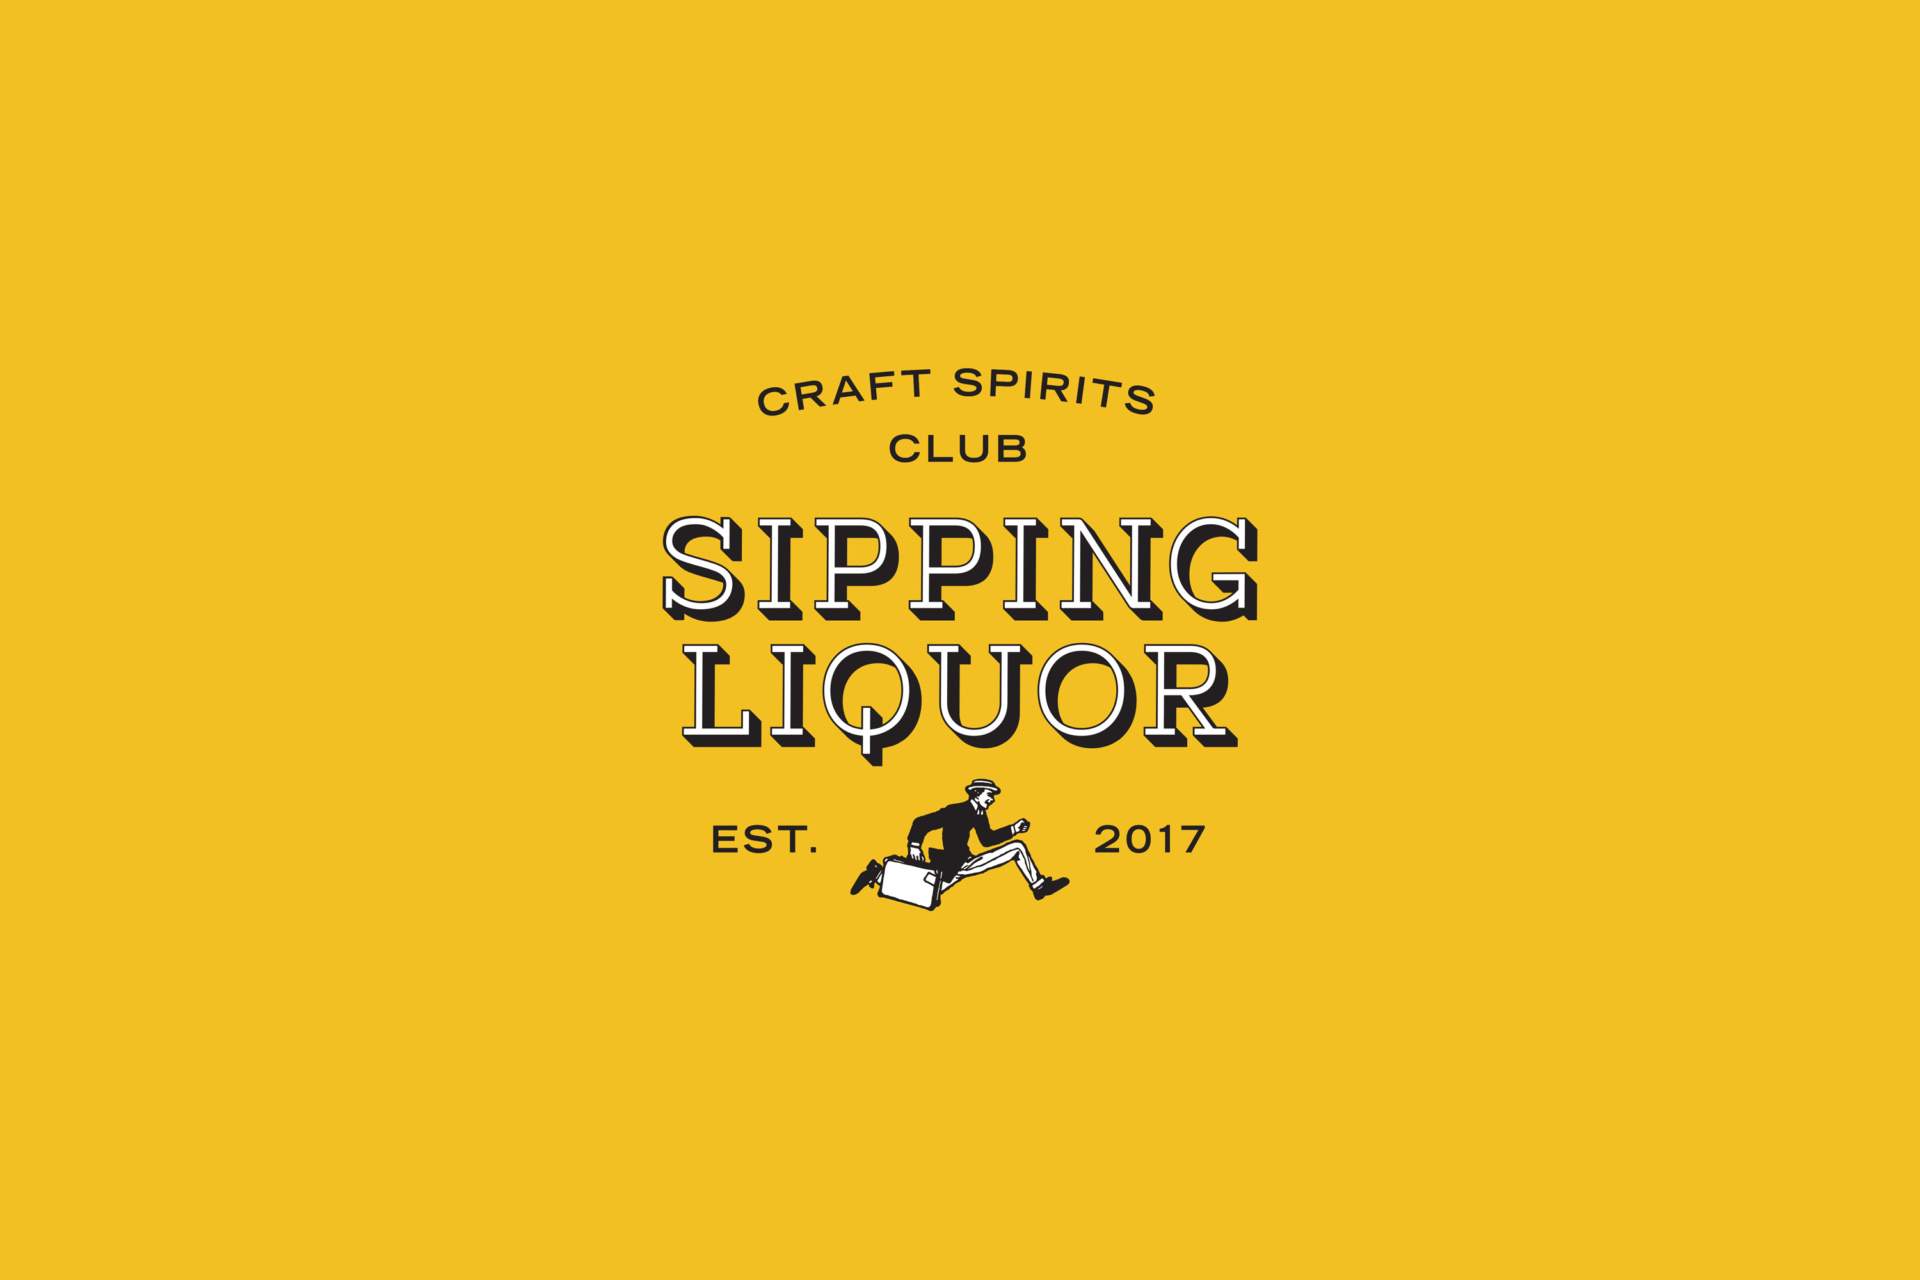 Yellow background, with Sipping Liquor logo on top- featuring graphic of black and white man running. Graphic design by Barefaced Studios, design agency based in Islington, North London.